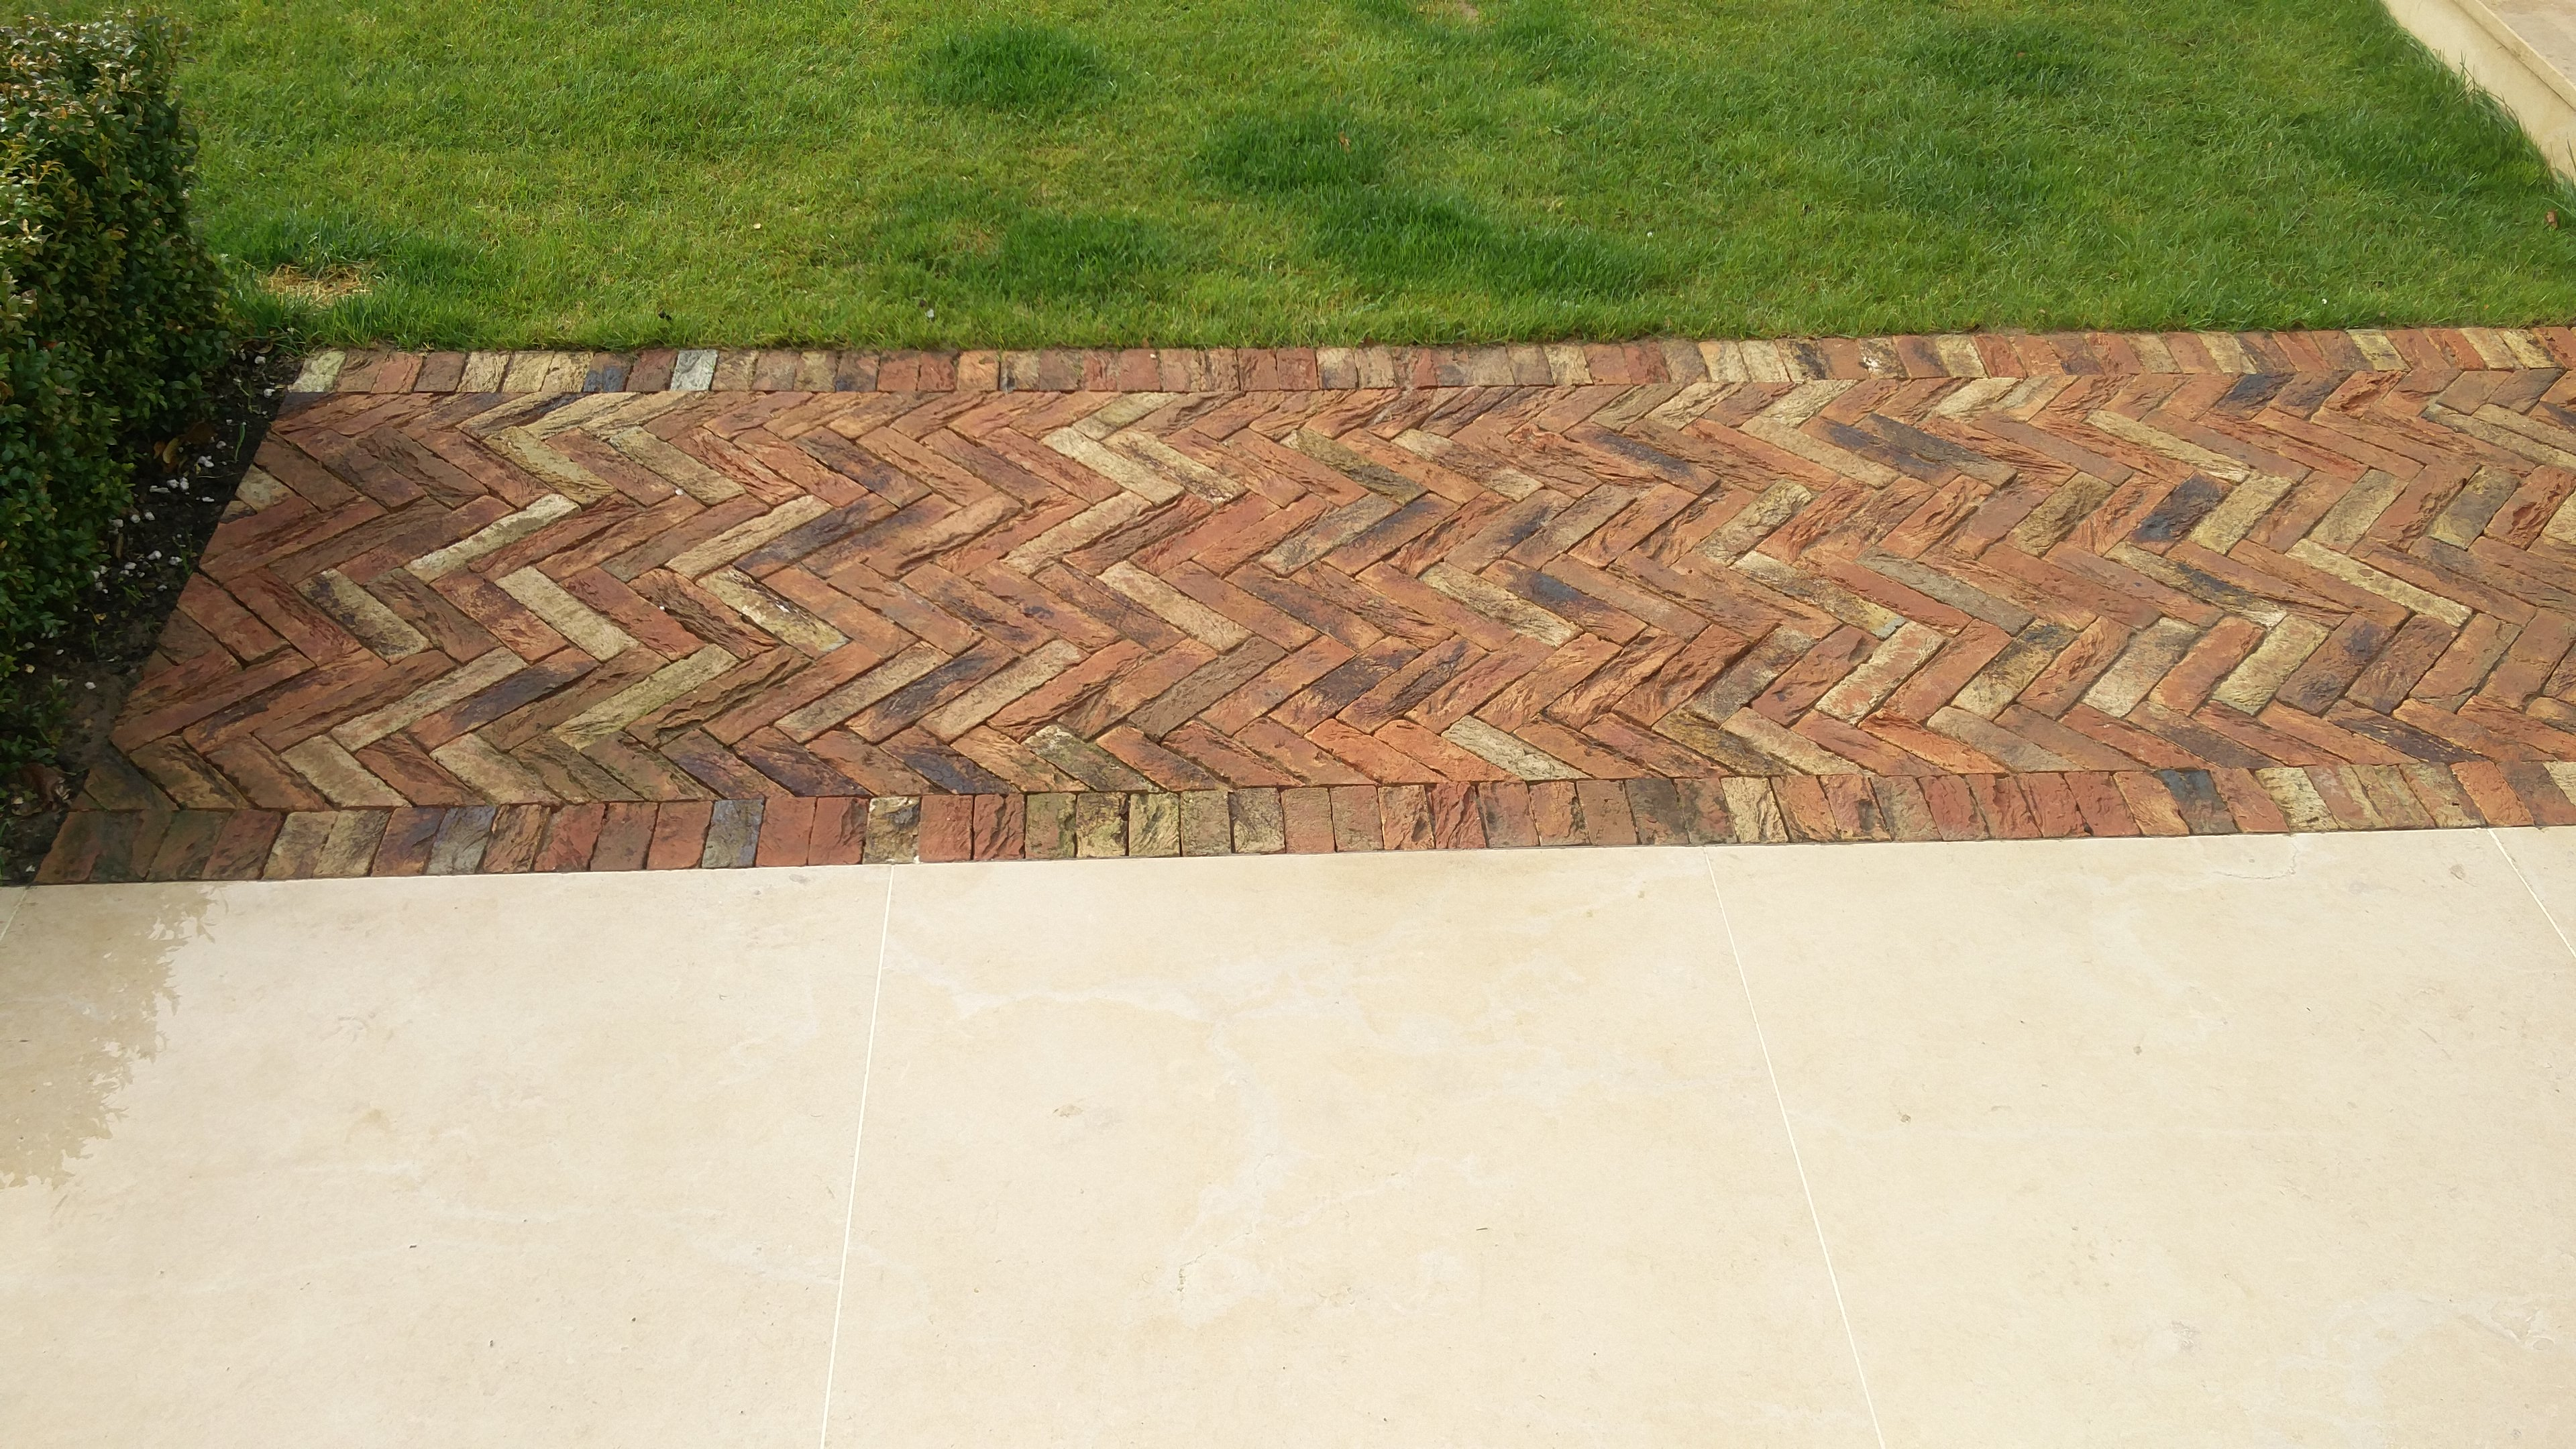 Herringbone brickwork path